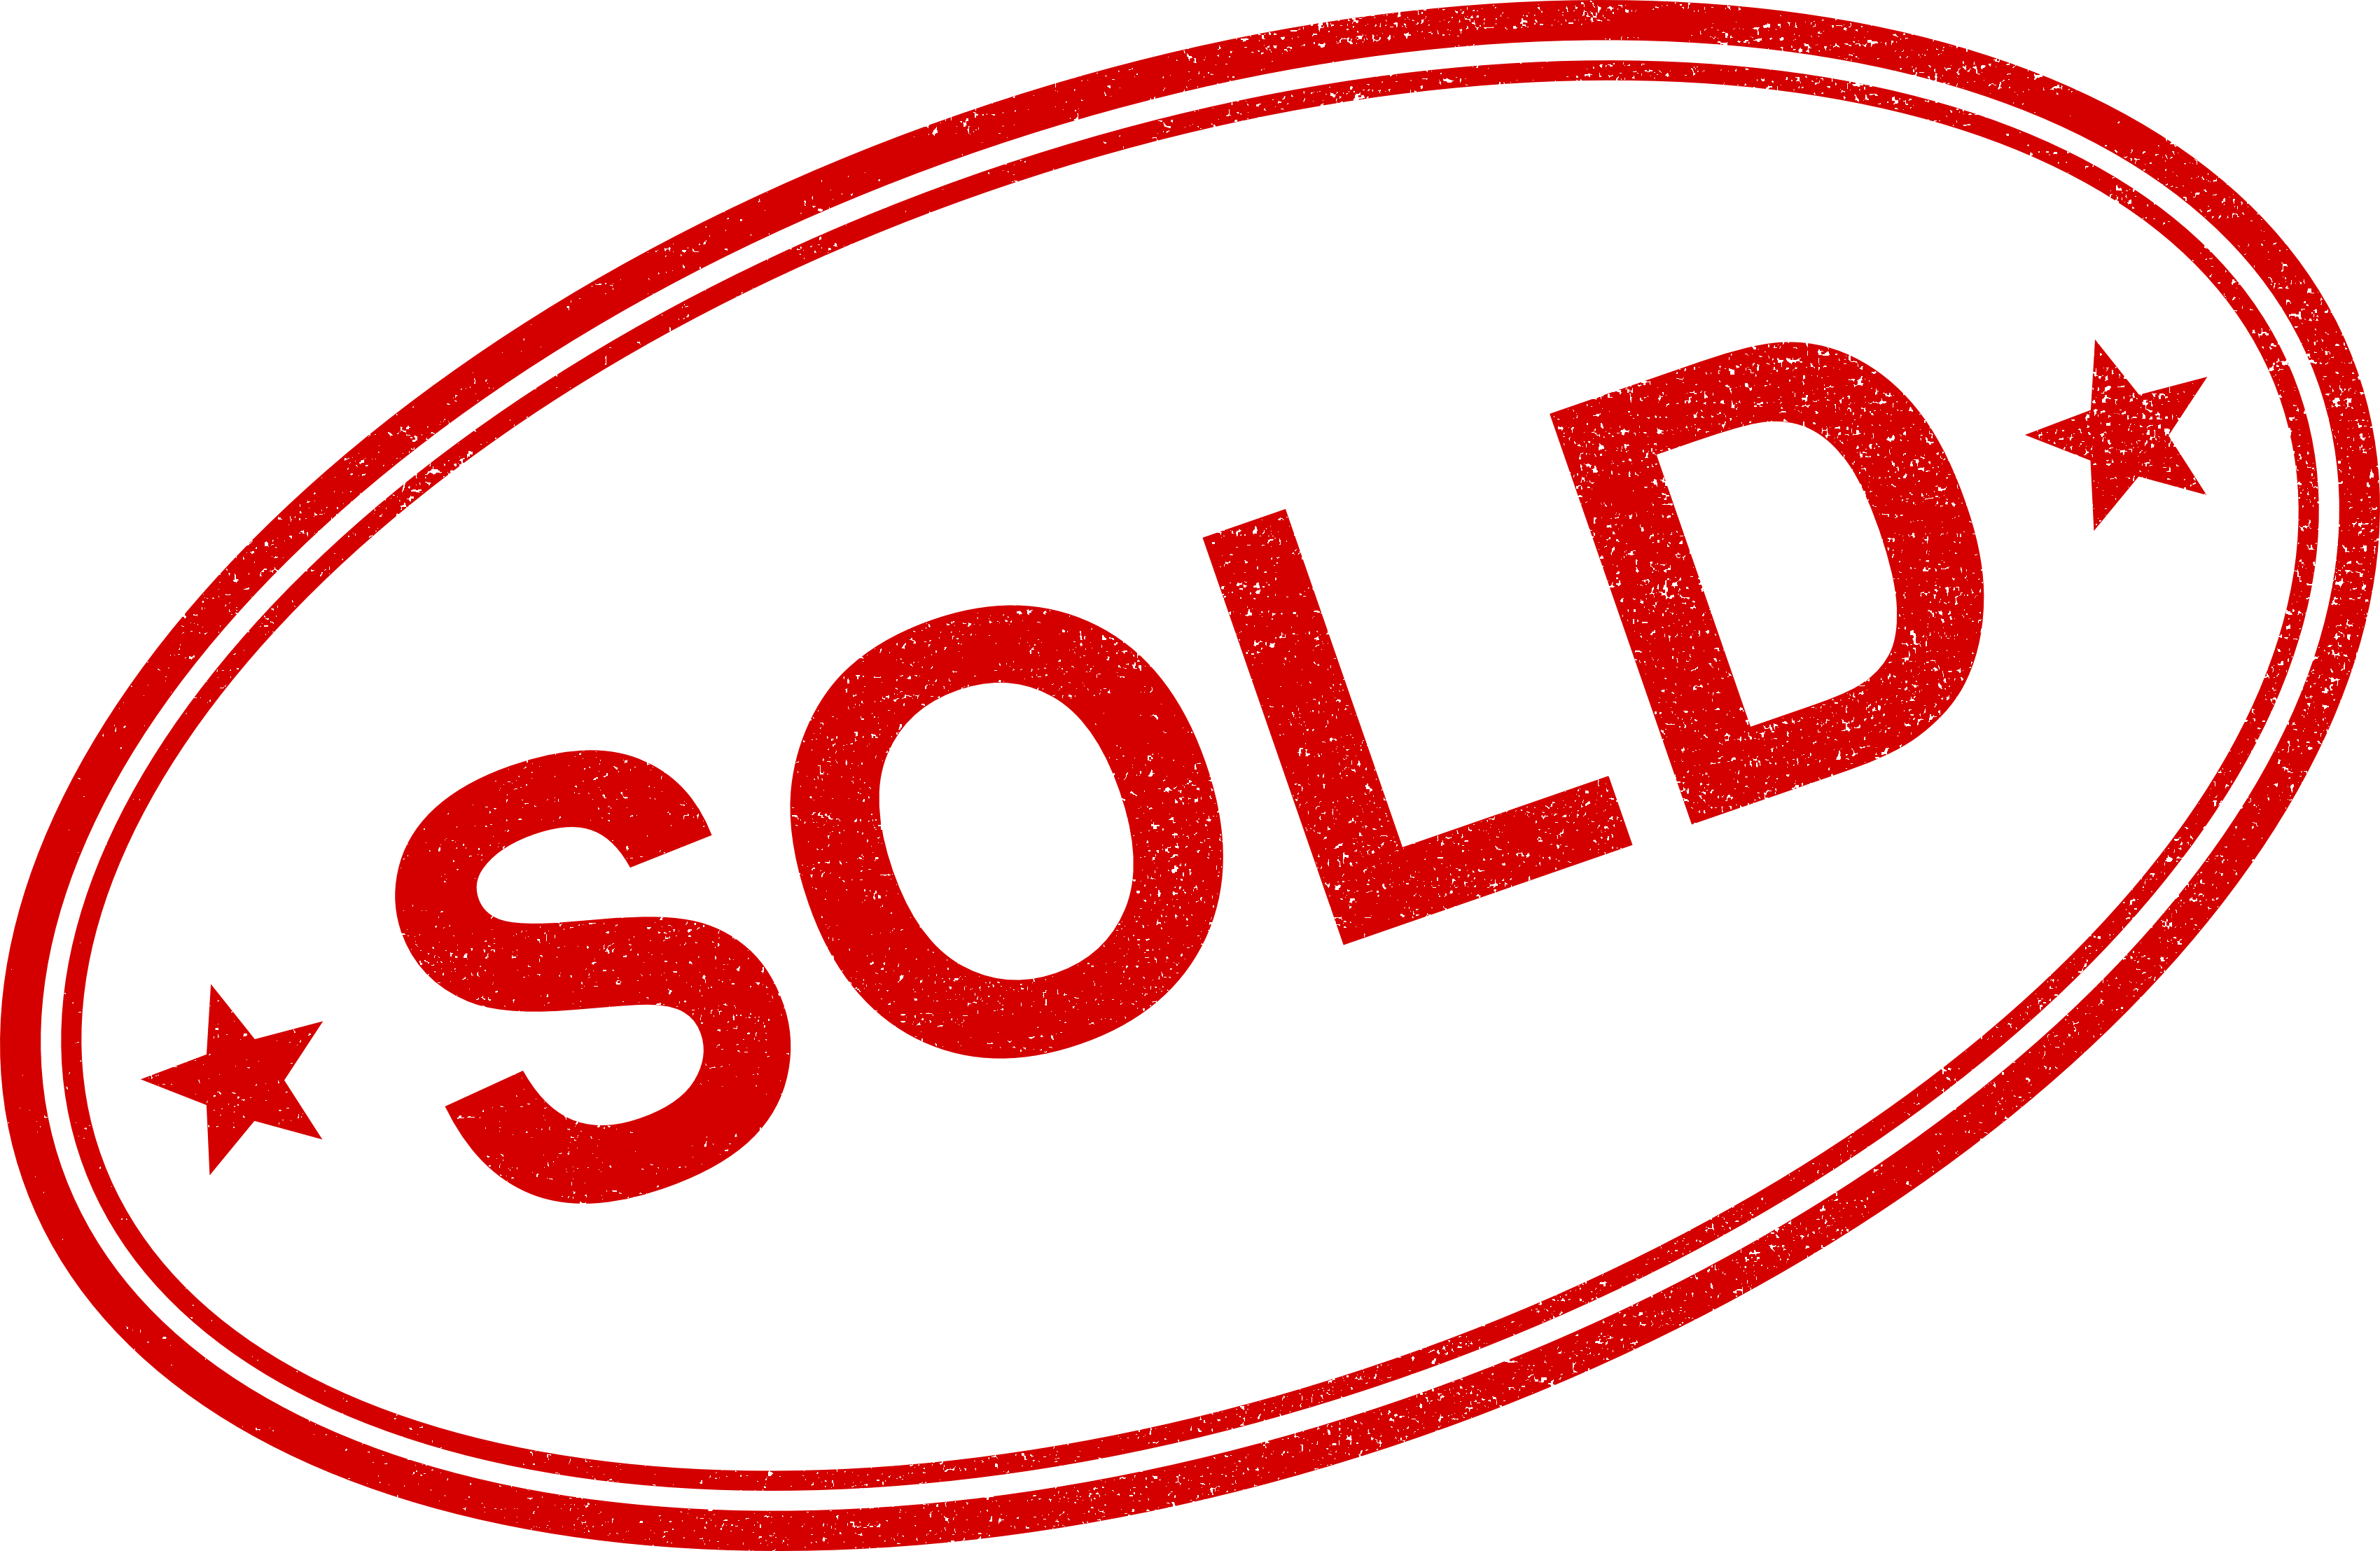 Sold-PNG-Transparent-Picture.png